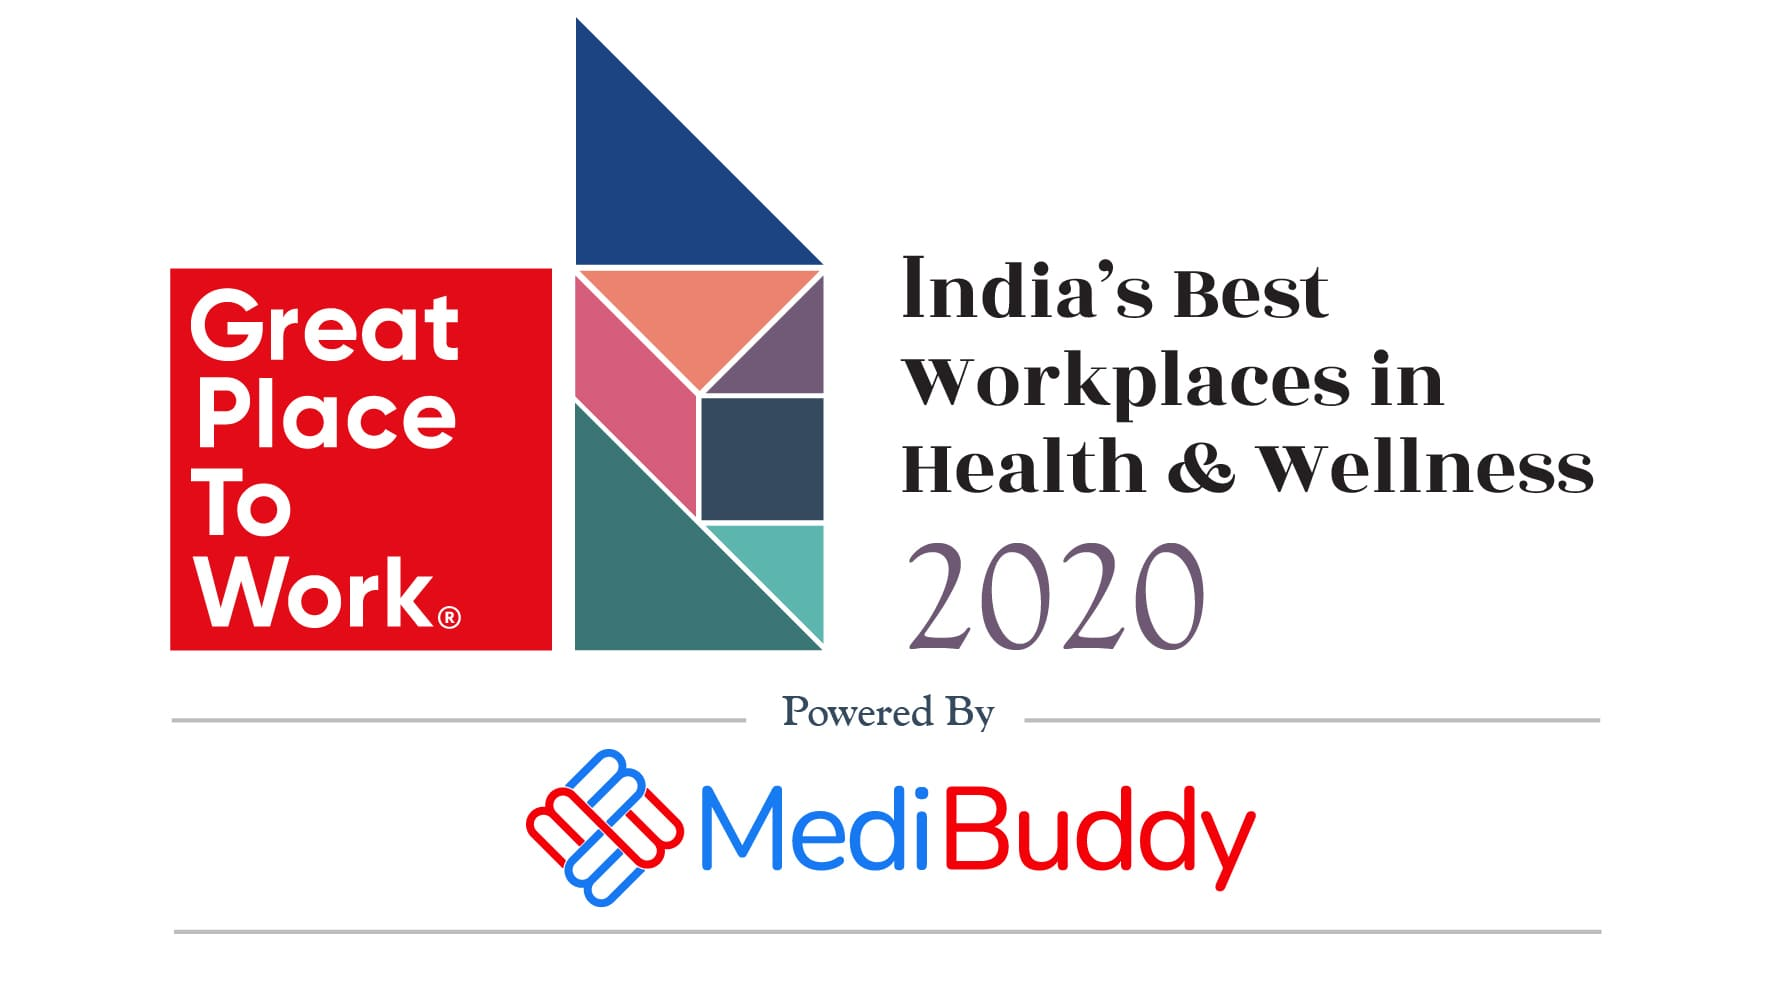 Cerner named one of India's Best Workplaces in Health and Wellness